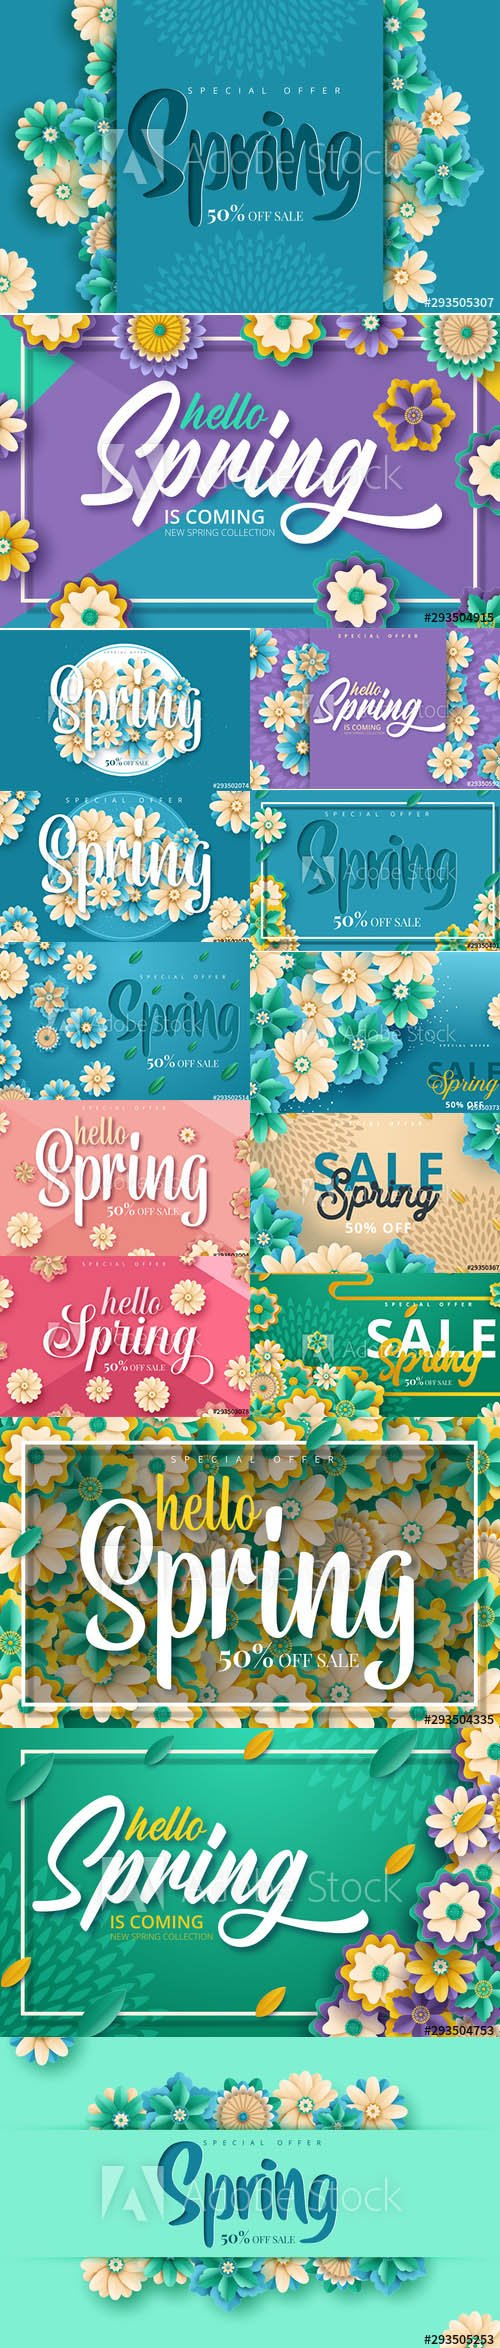 Sale Backgrounds with Flowers